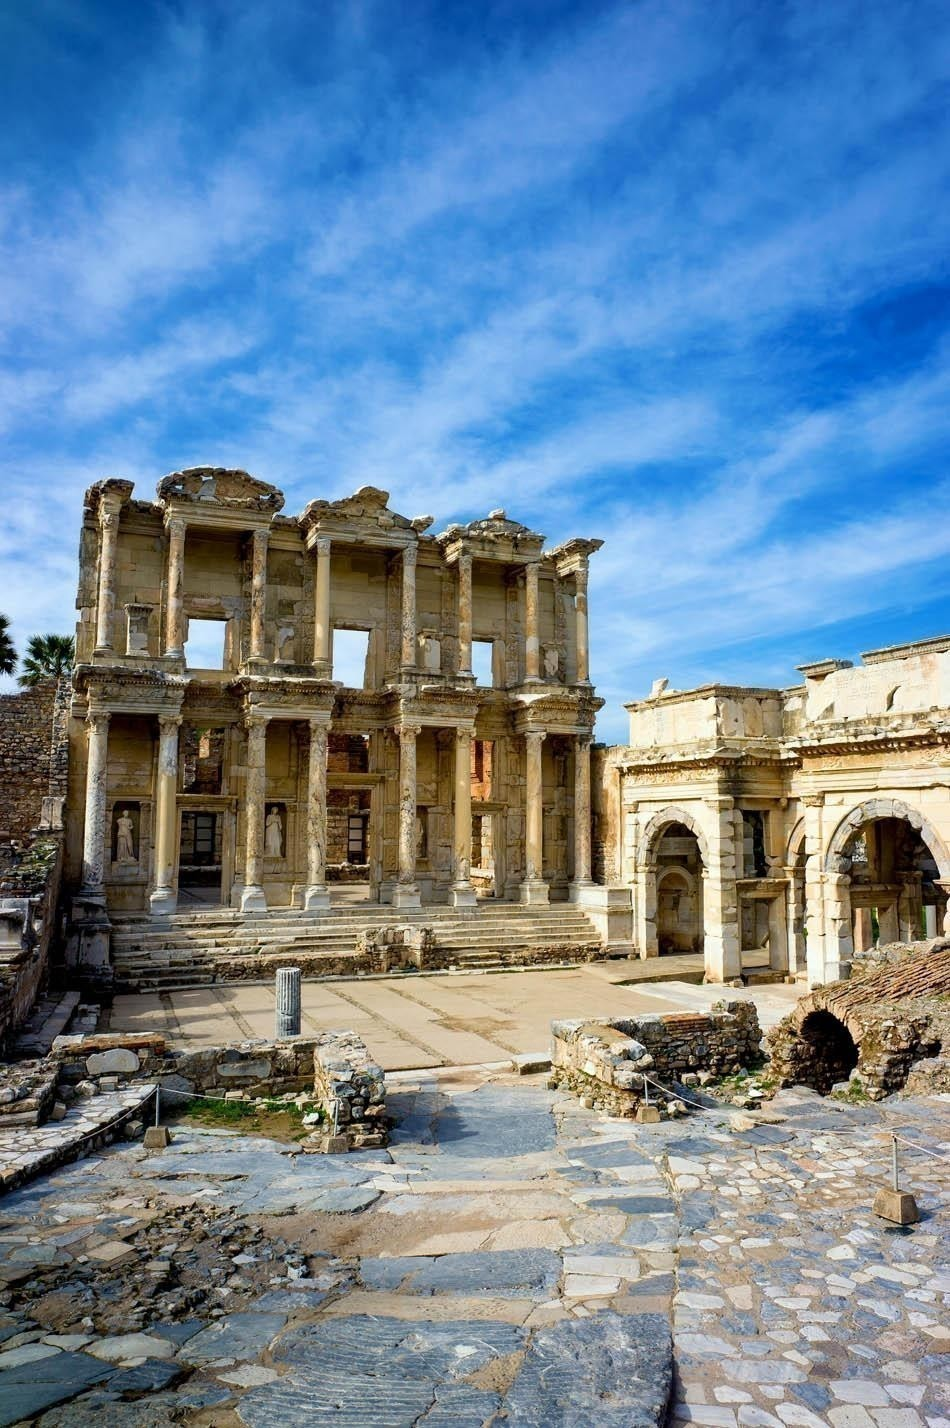 Library of Celsus in Ephesus ancient city, UNESCO world heritage site in Selcuk, Turkey | Turkey Travel Guide